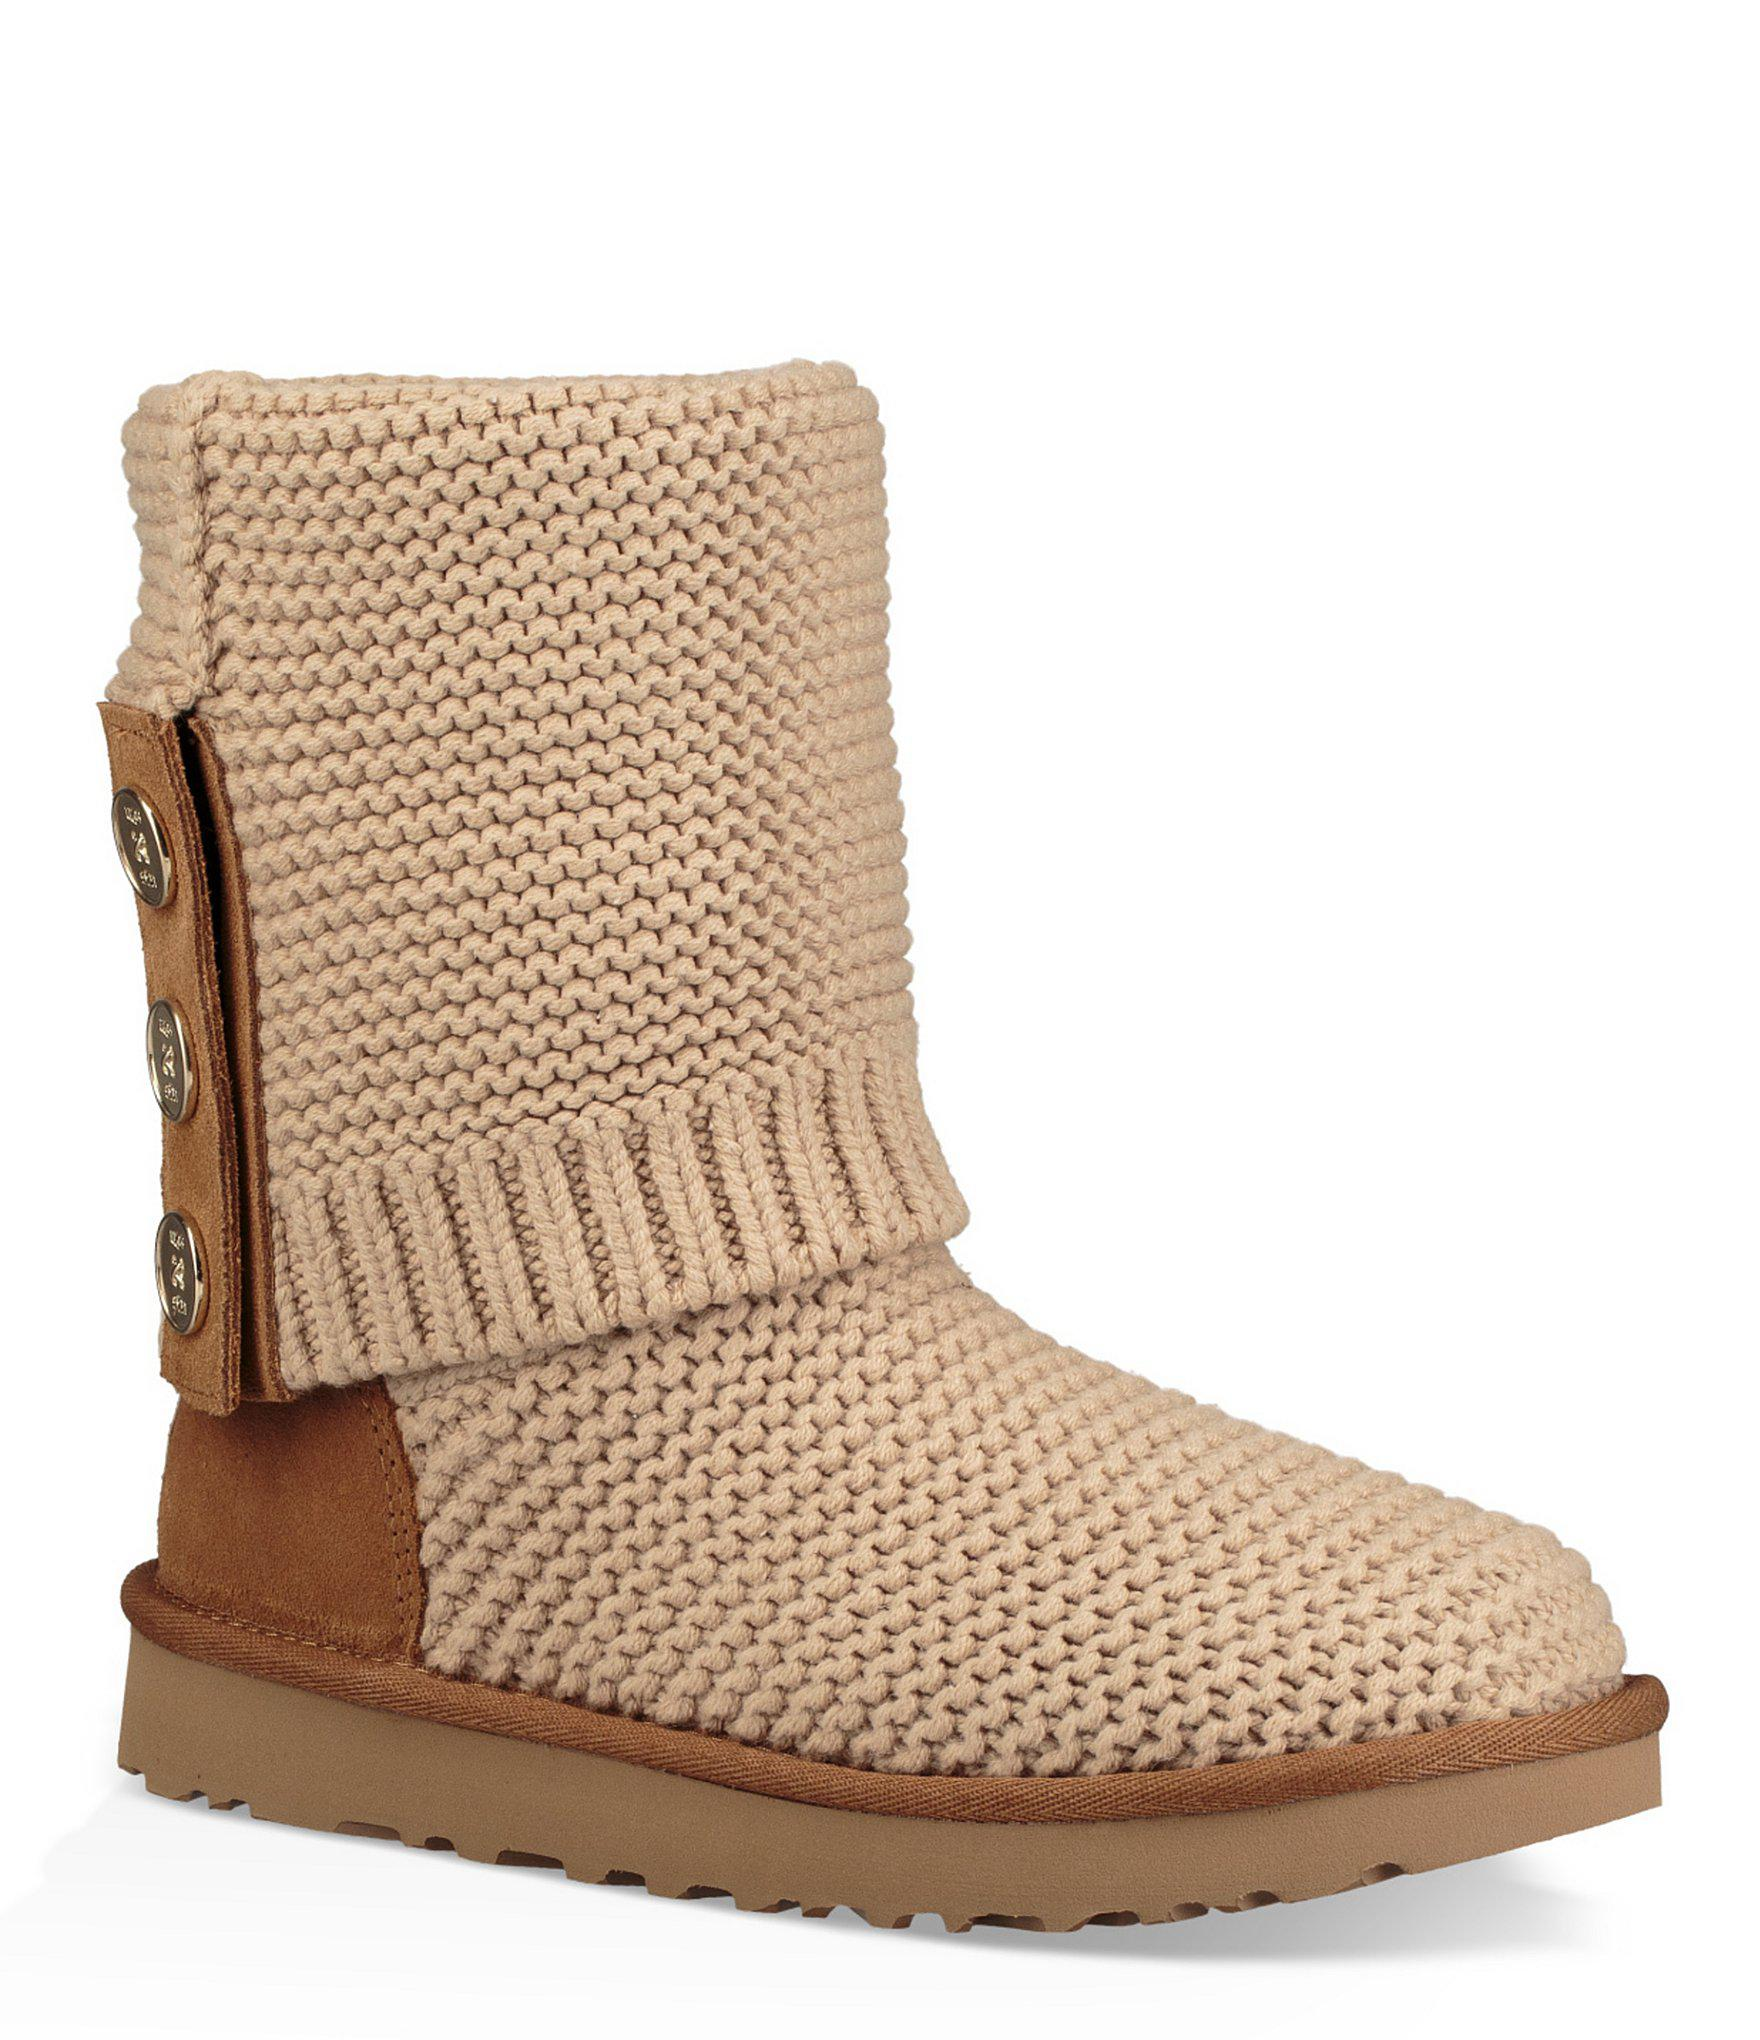 fbcb697f879 Ugg Natural Purl Cardy Knit Boots